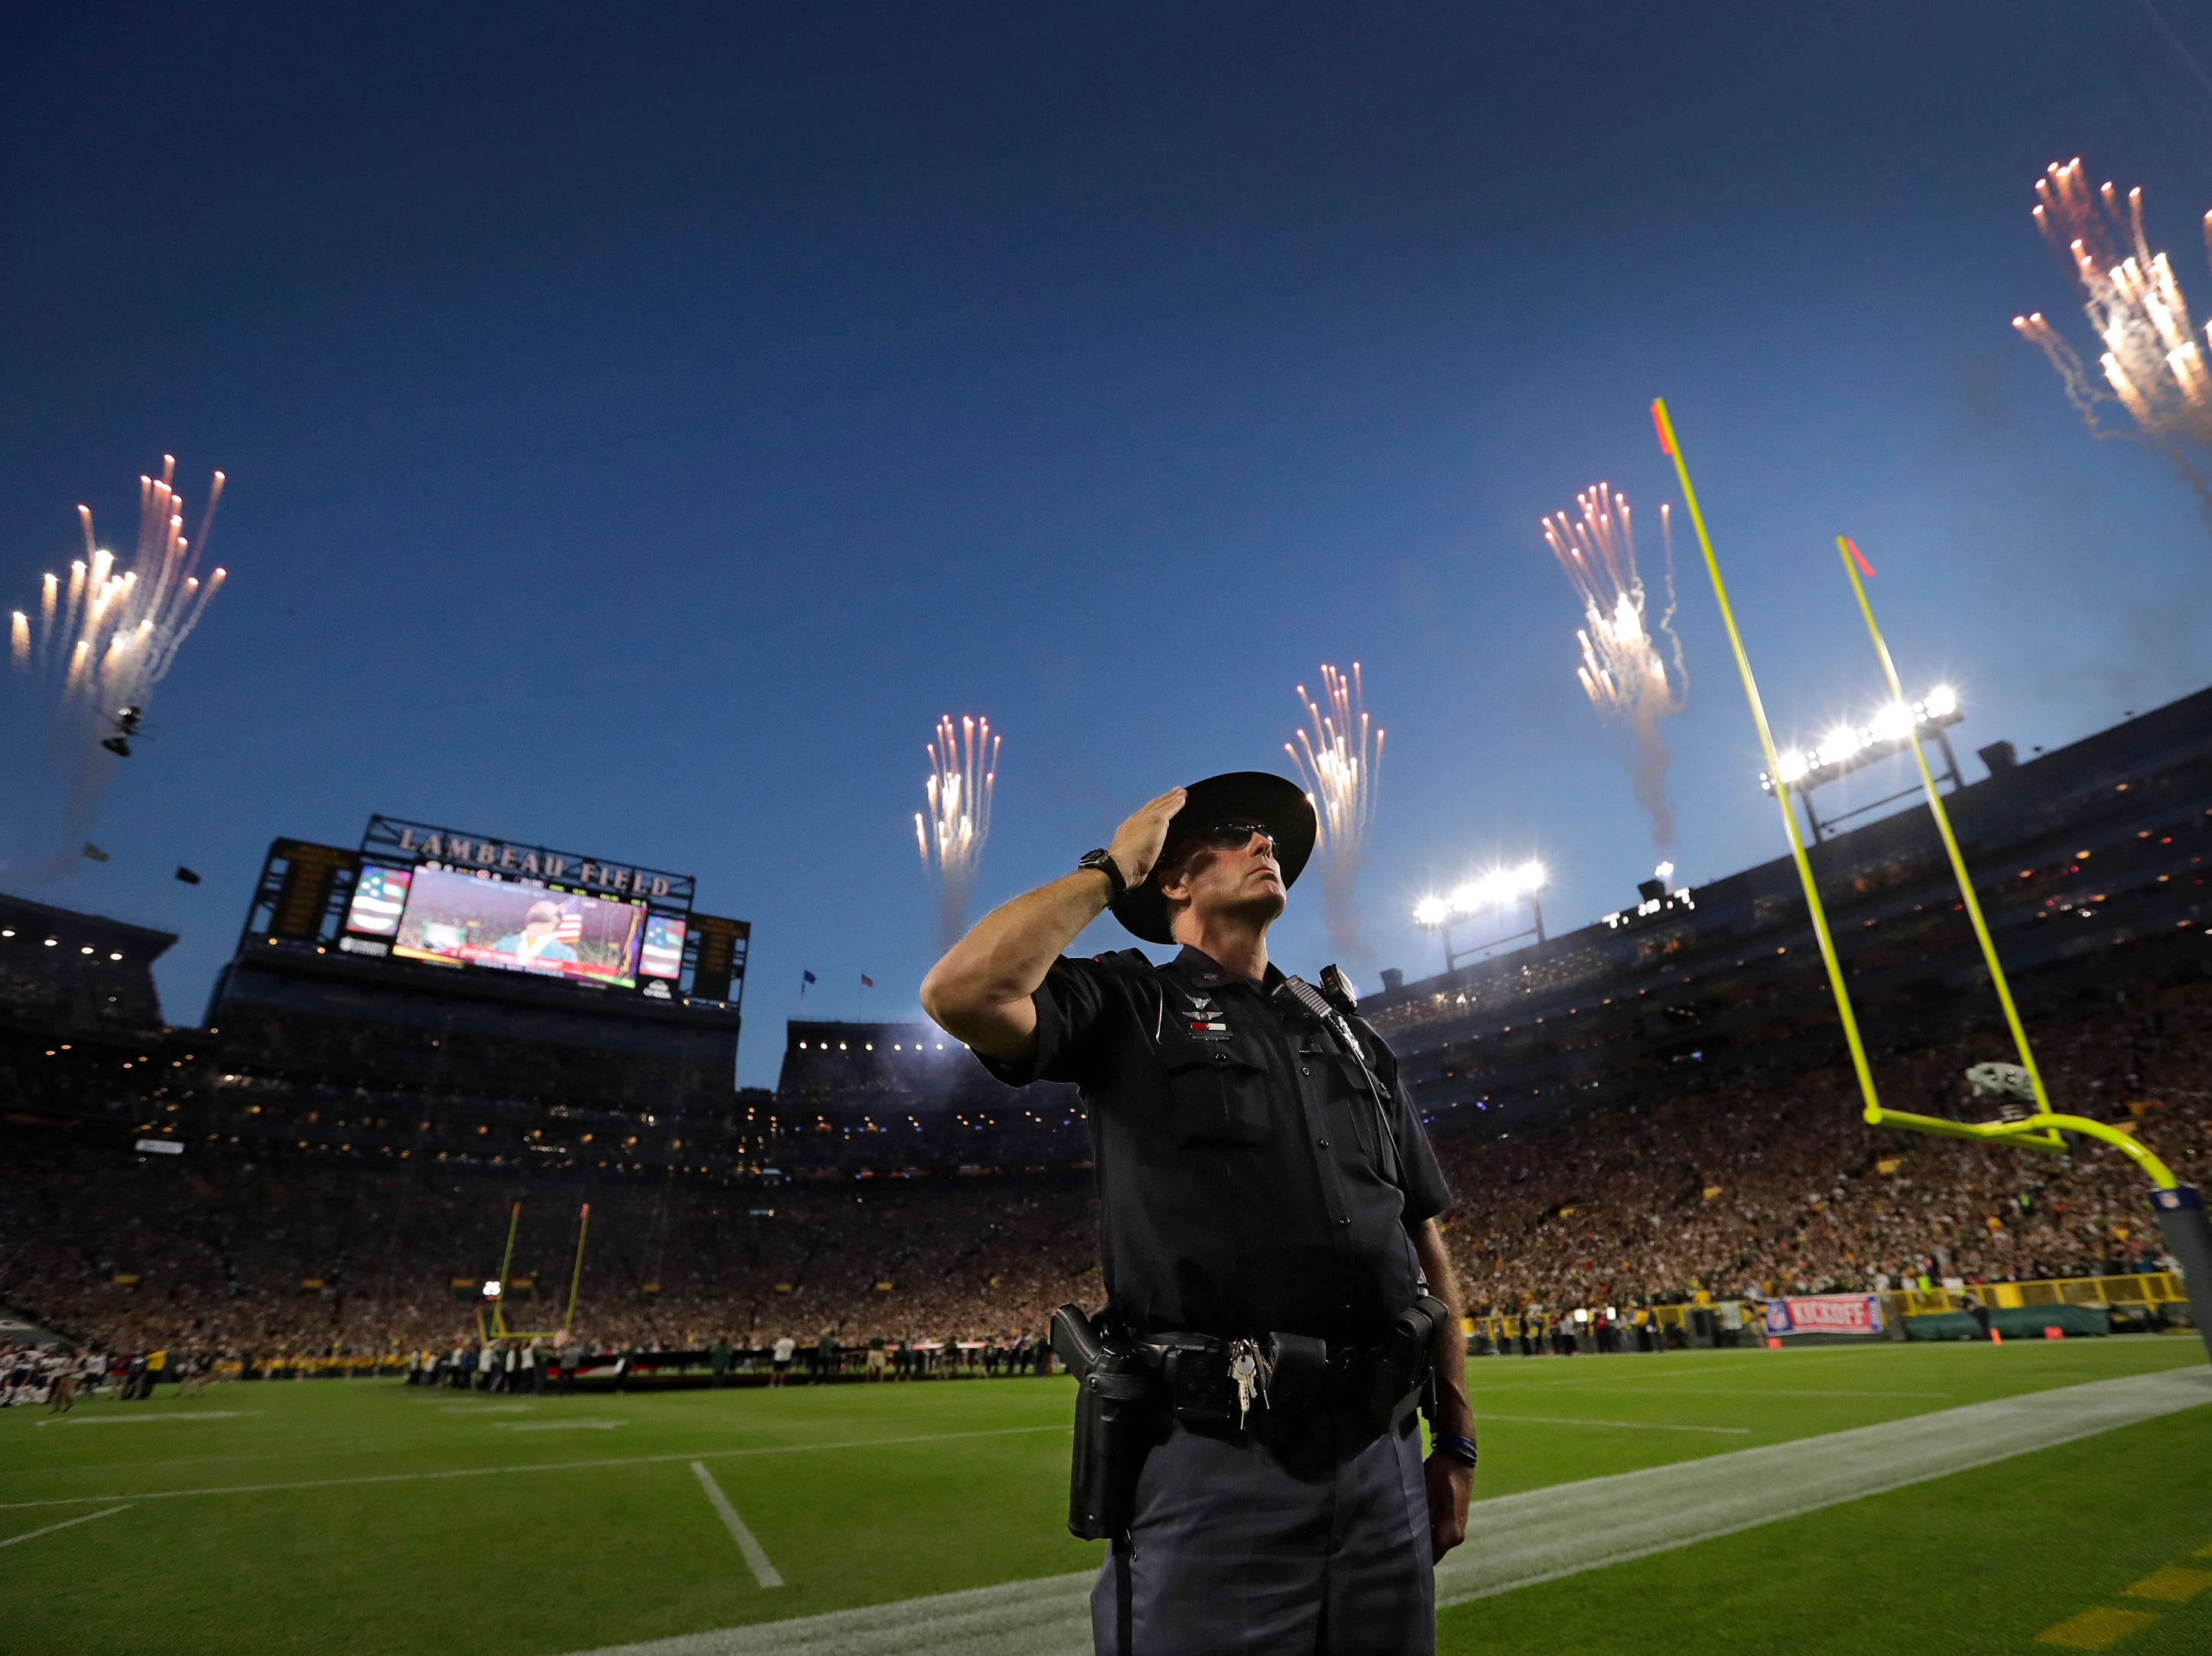 Wisconsin State Patrol trooper John Jones salutes during the national anthem before the Green Bay Packers play the Chicago Bears Sunday, Sept. 9, 2018, at Lambeau Field in Green Bay, Wis. 